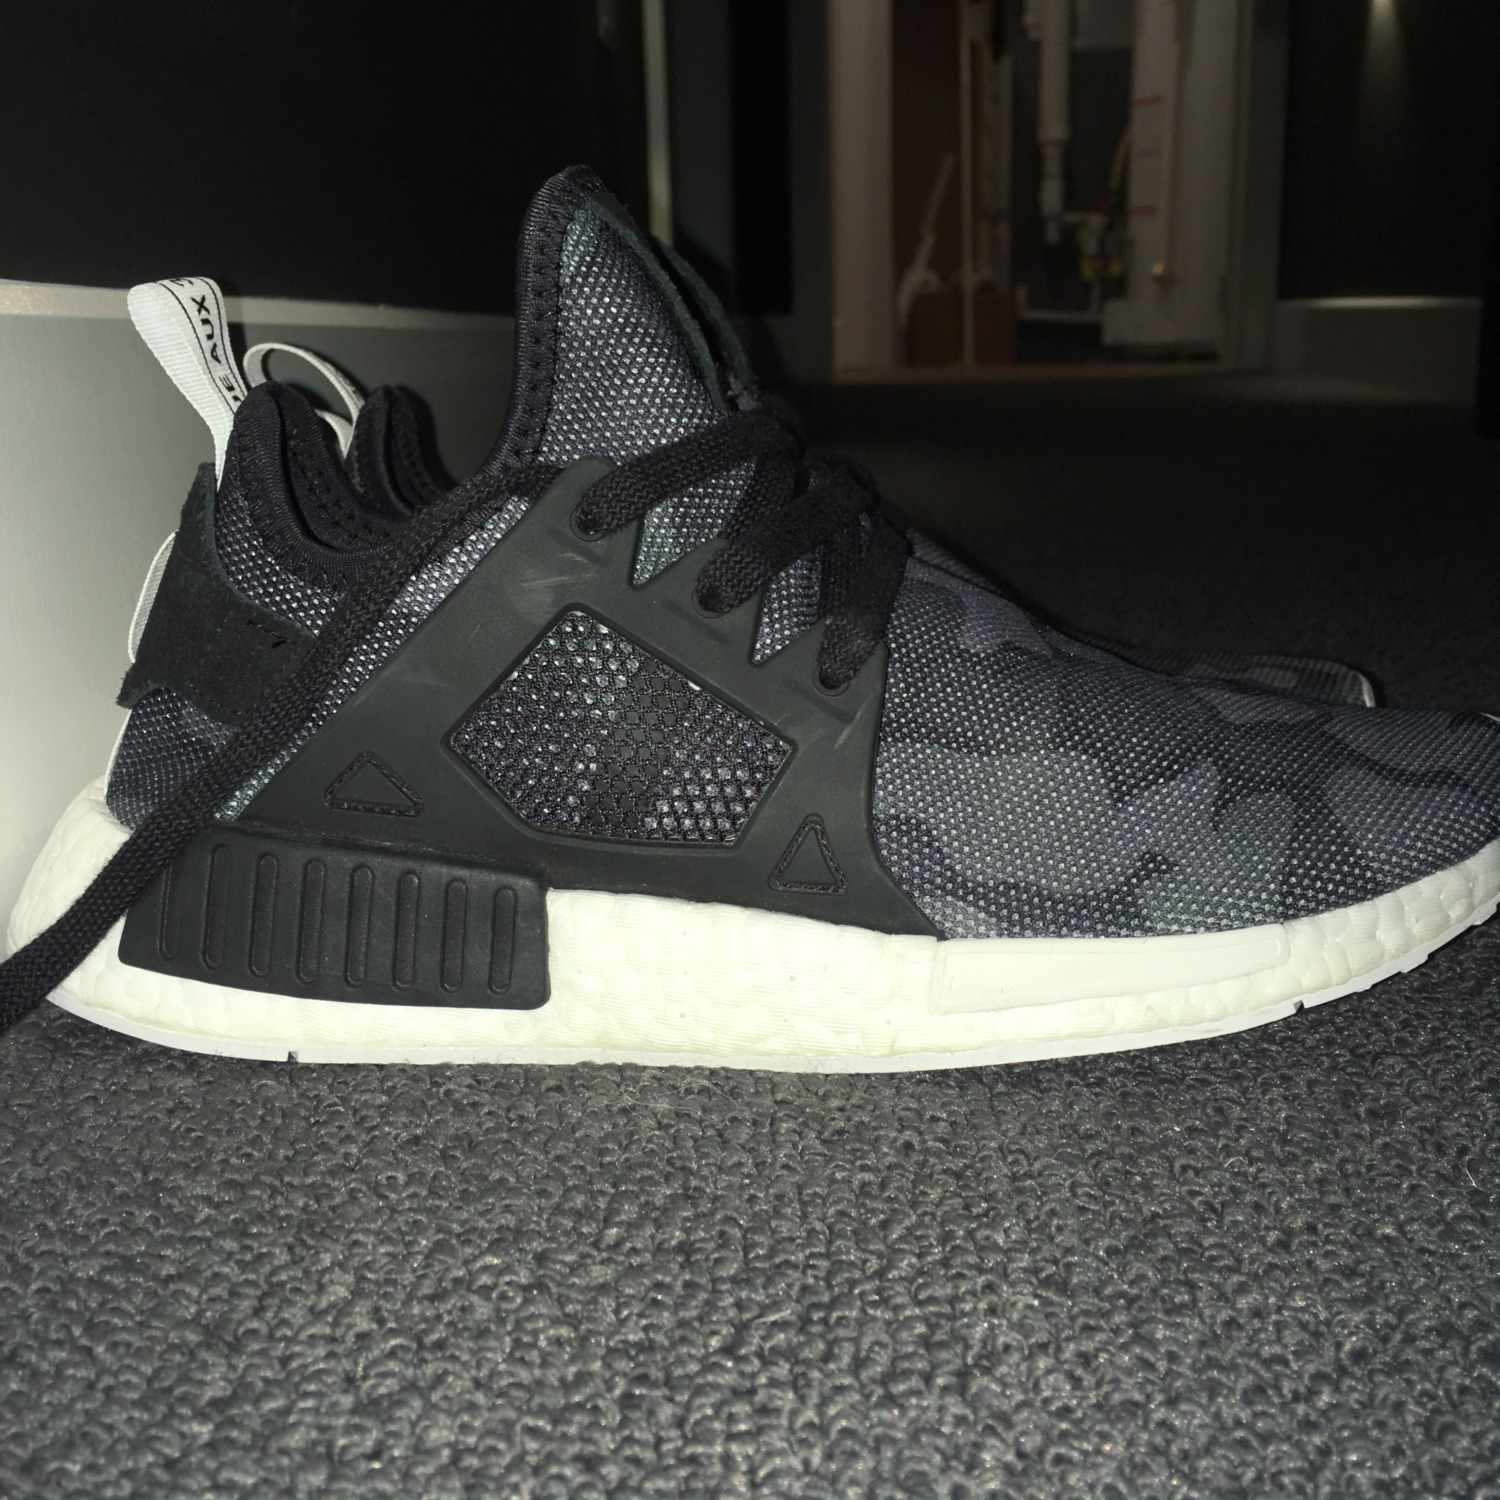 brand new eeec5 e3793 Nmd Xr1 Duck Camo (Black) Can Price Negotiable